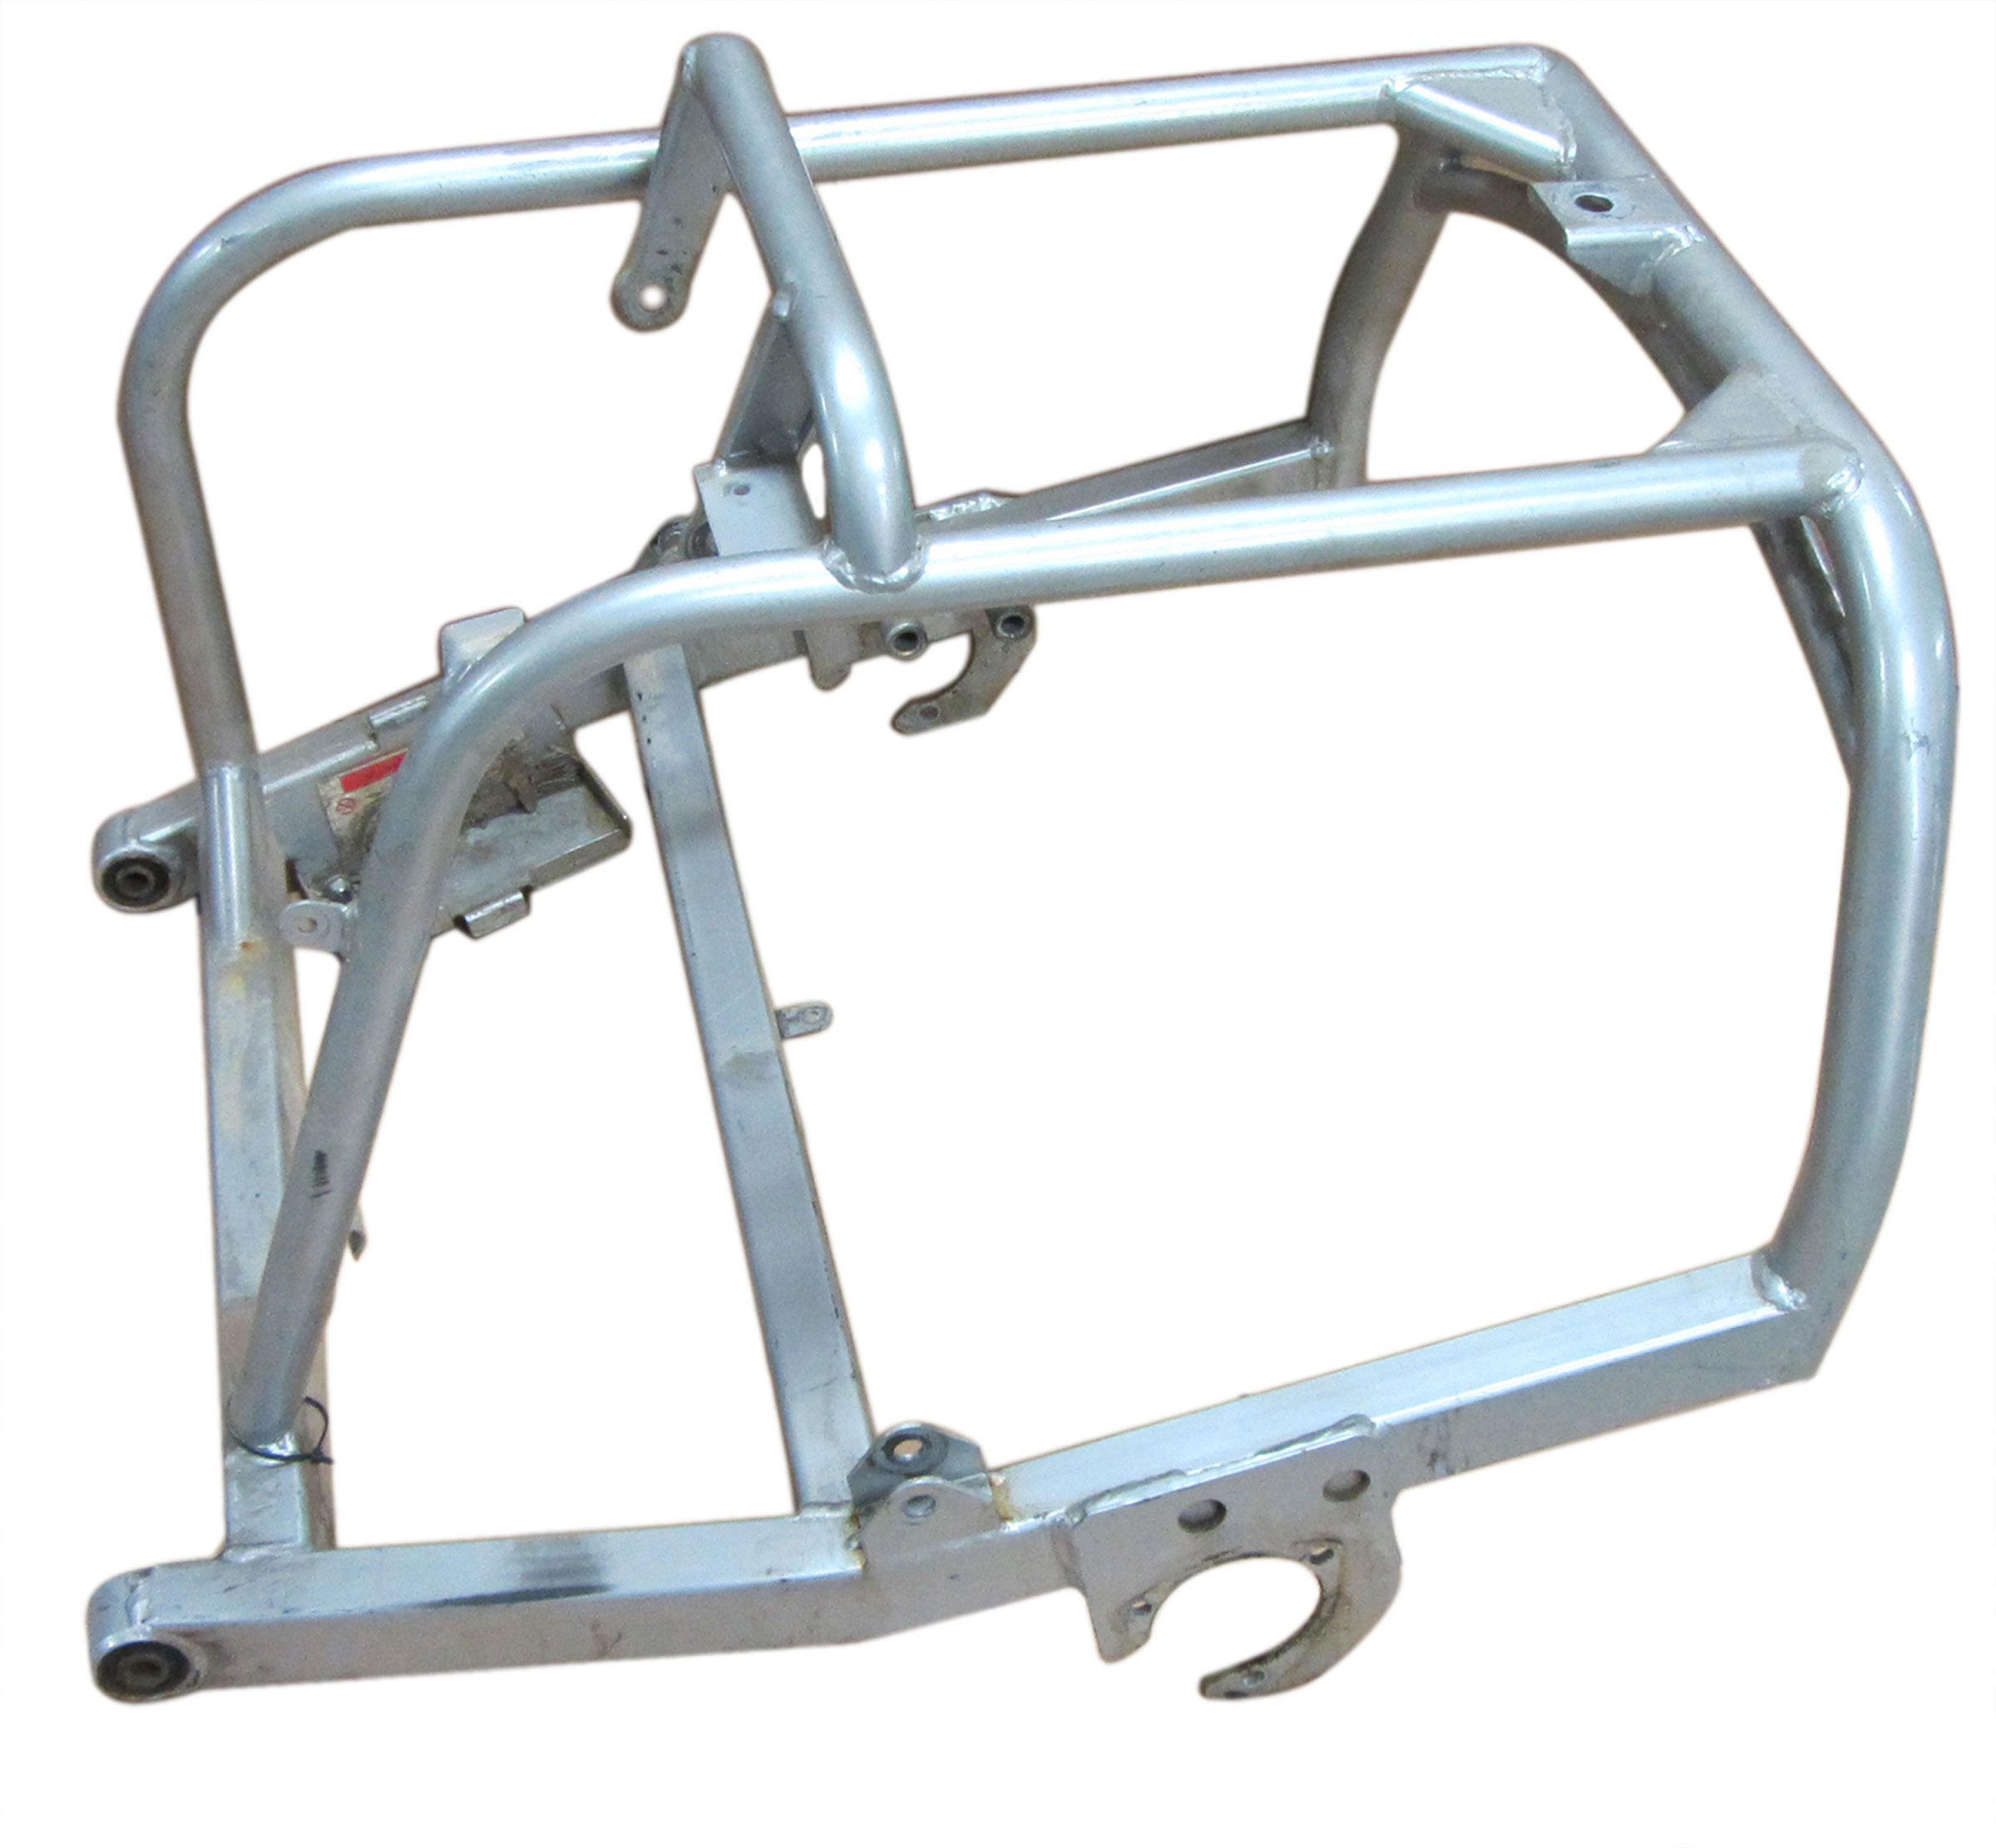 Swing Arm for Yerf Dog Spiderbox | 200669 | BMI Karts And Parts